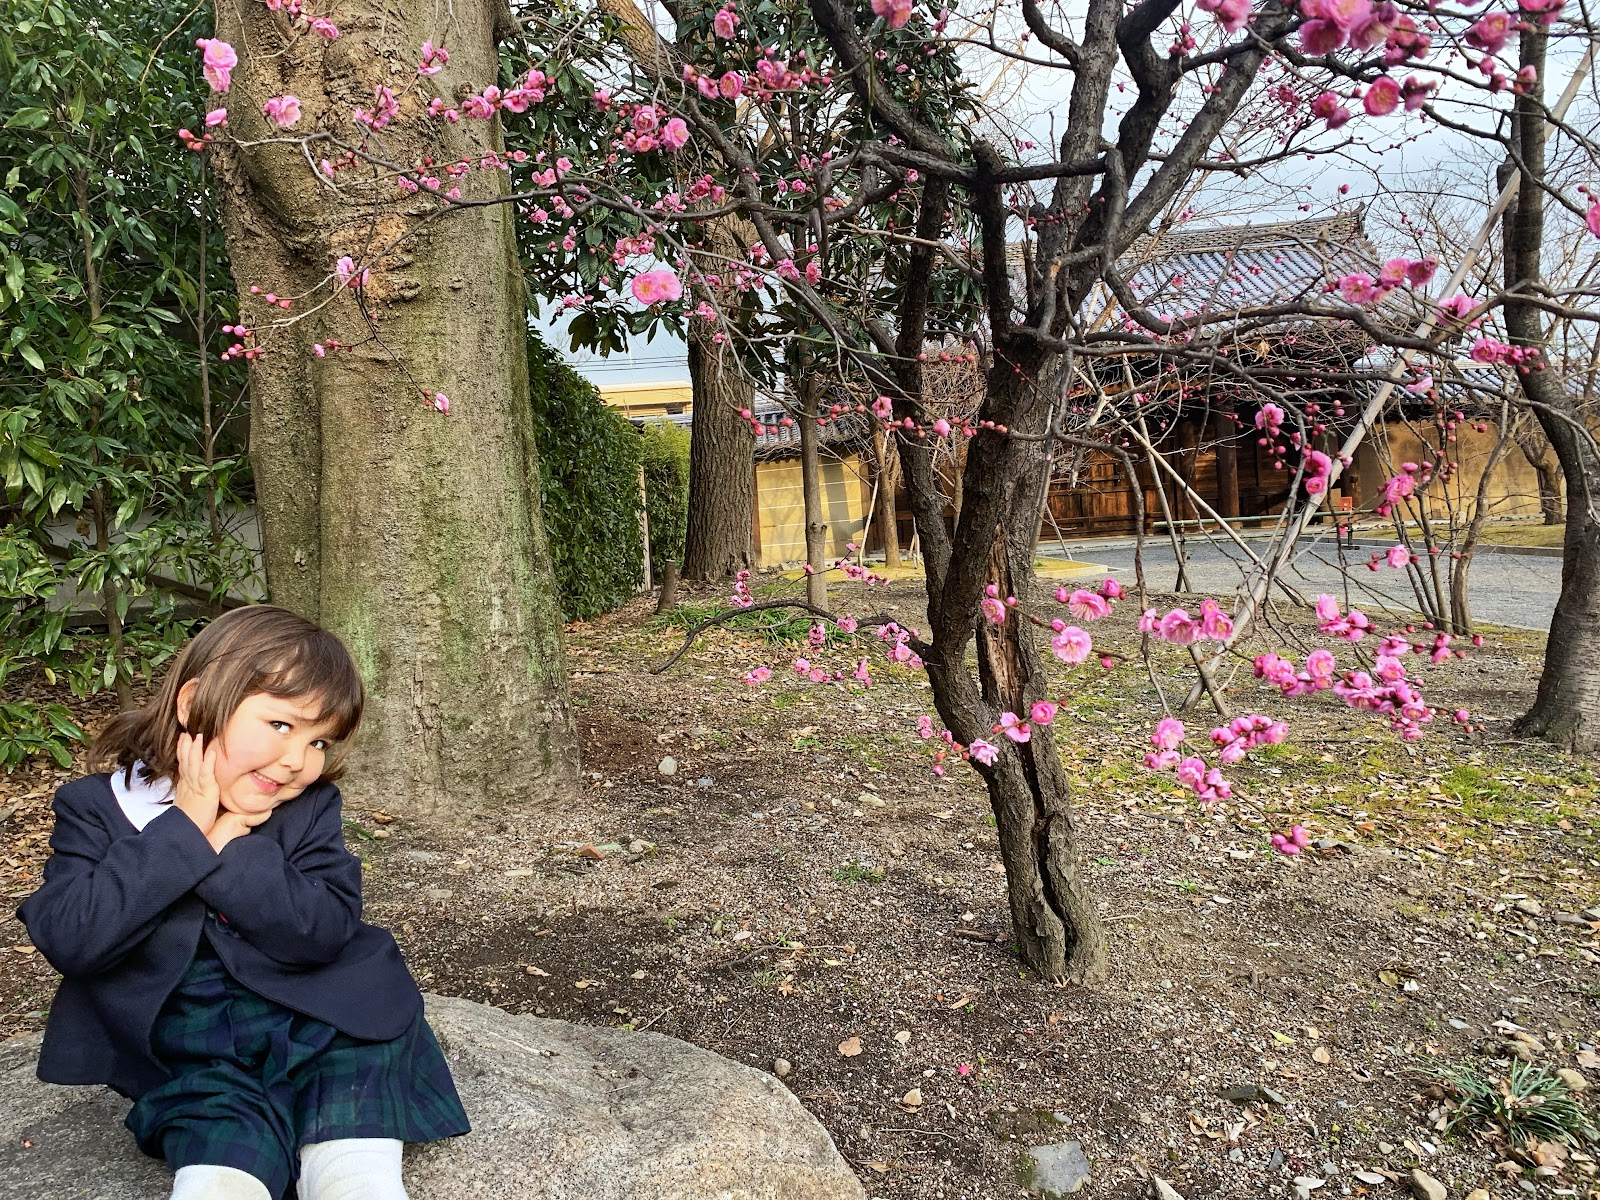 Kid enjoys the cherry blossoms